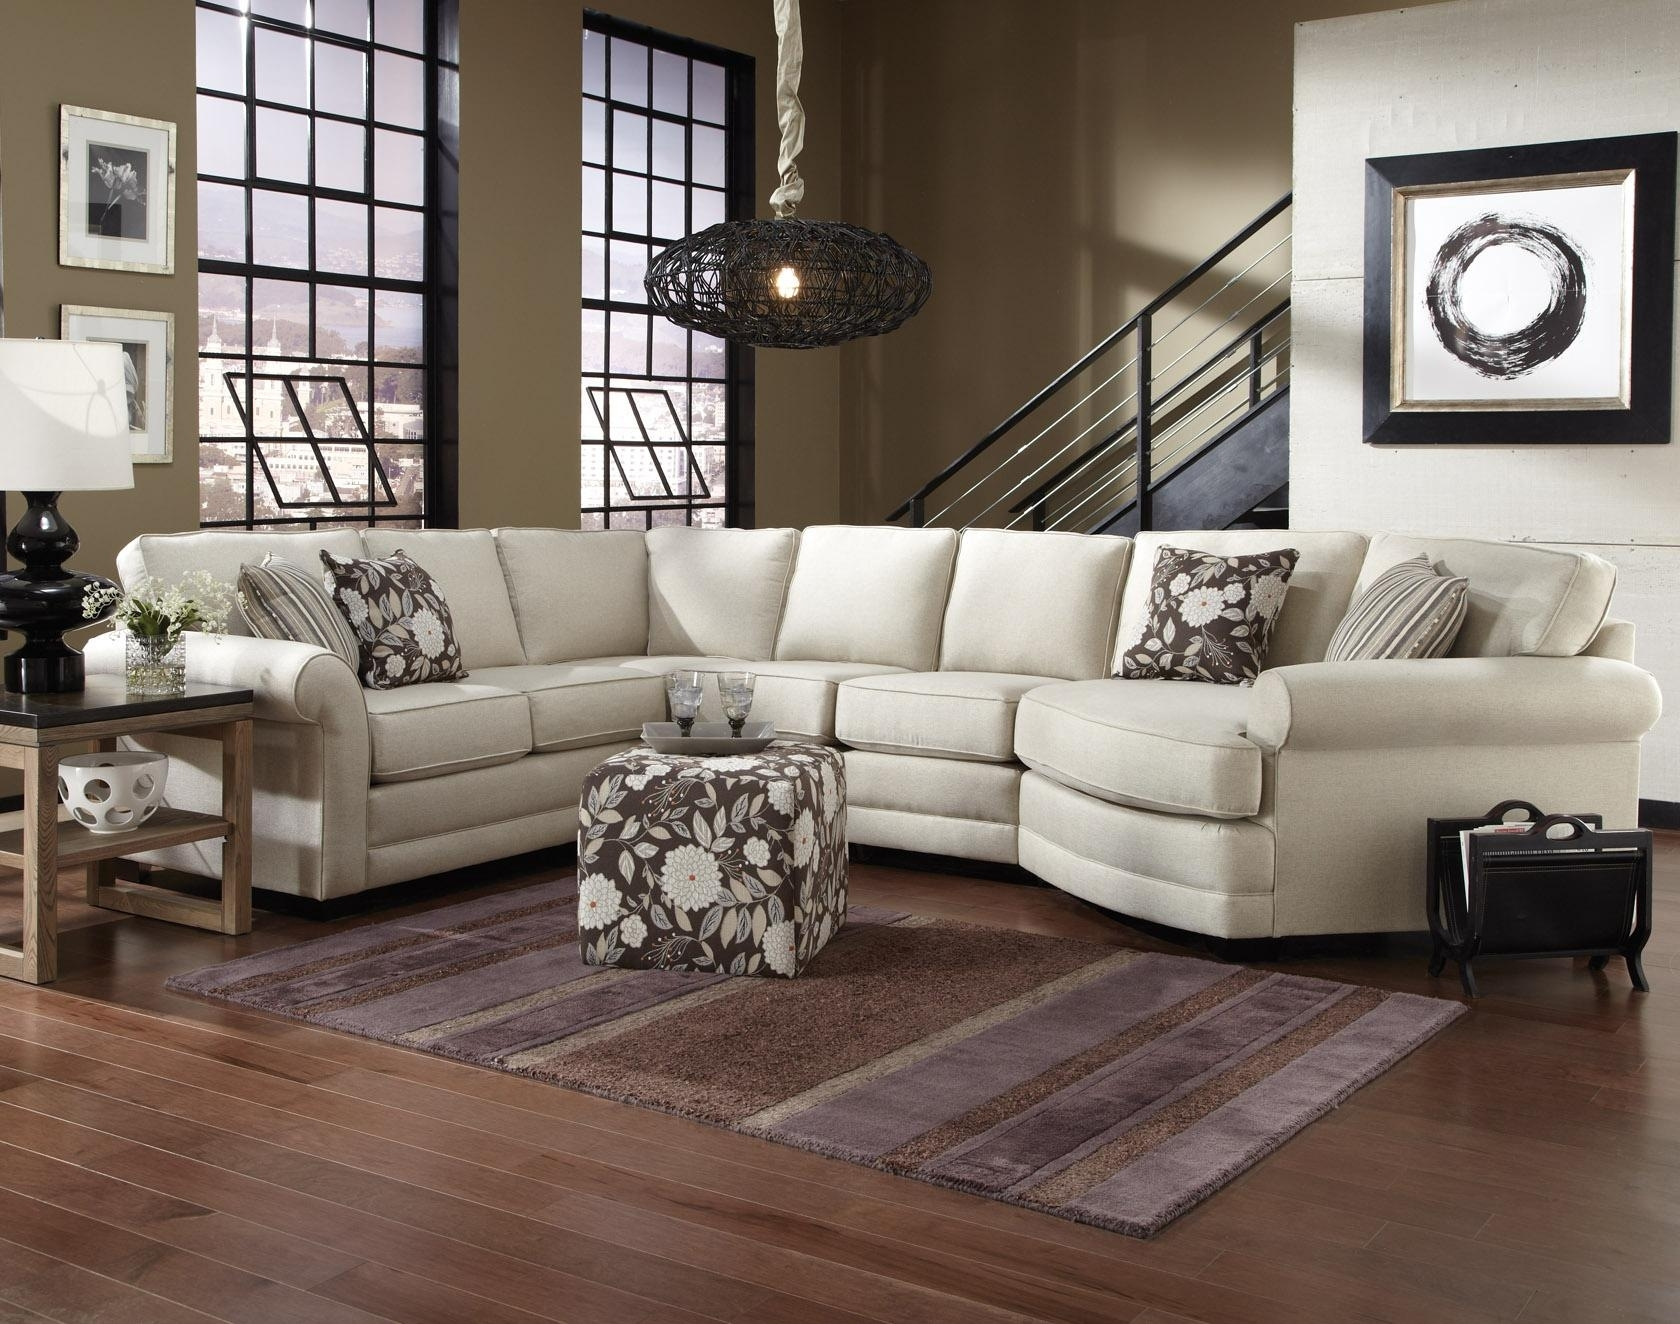 England Brantley 5 Seat Sectional Sofa With Cuddler | Dunk & Bright regarding Sectional Sofas With Cuddler (Image 4 of 10)